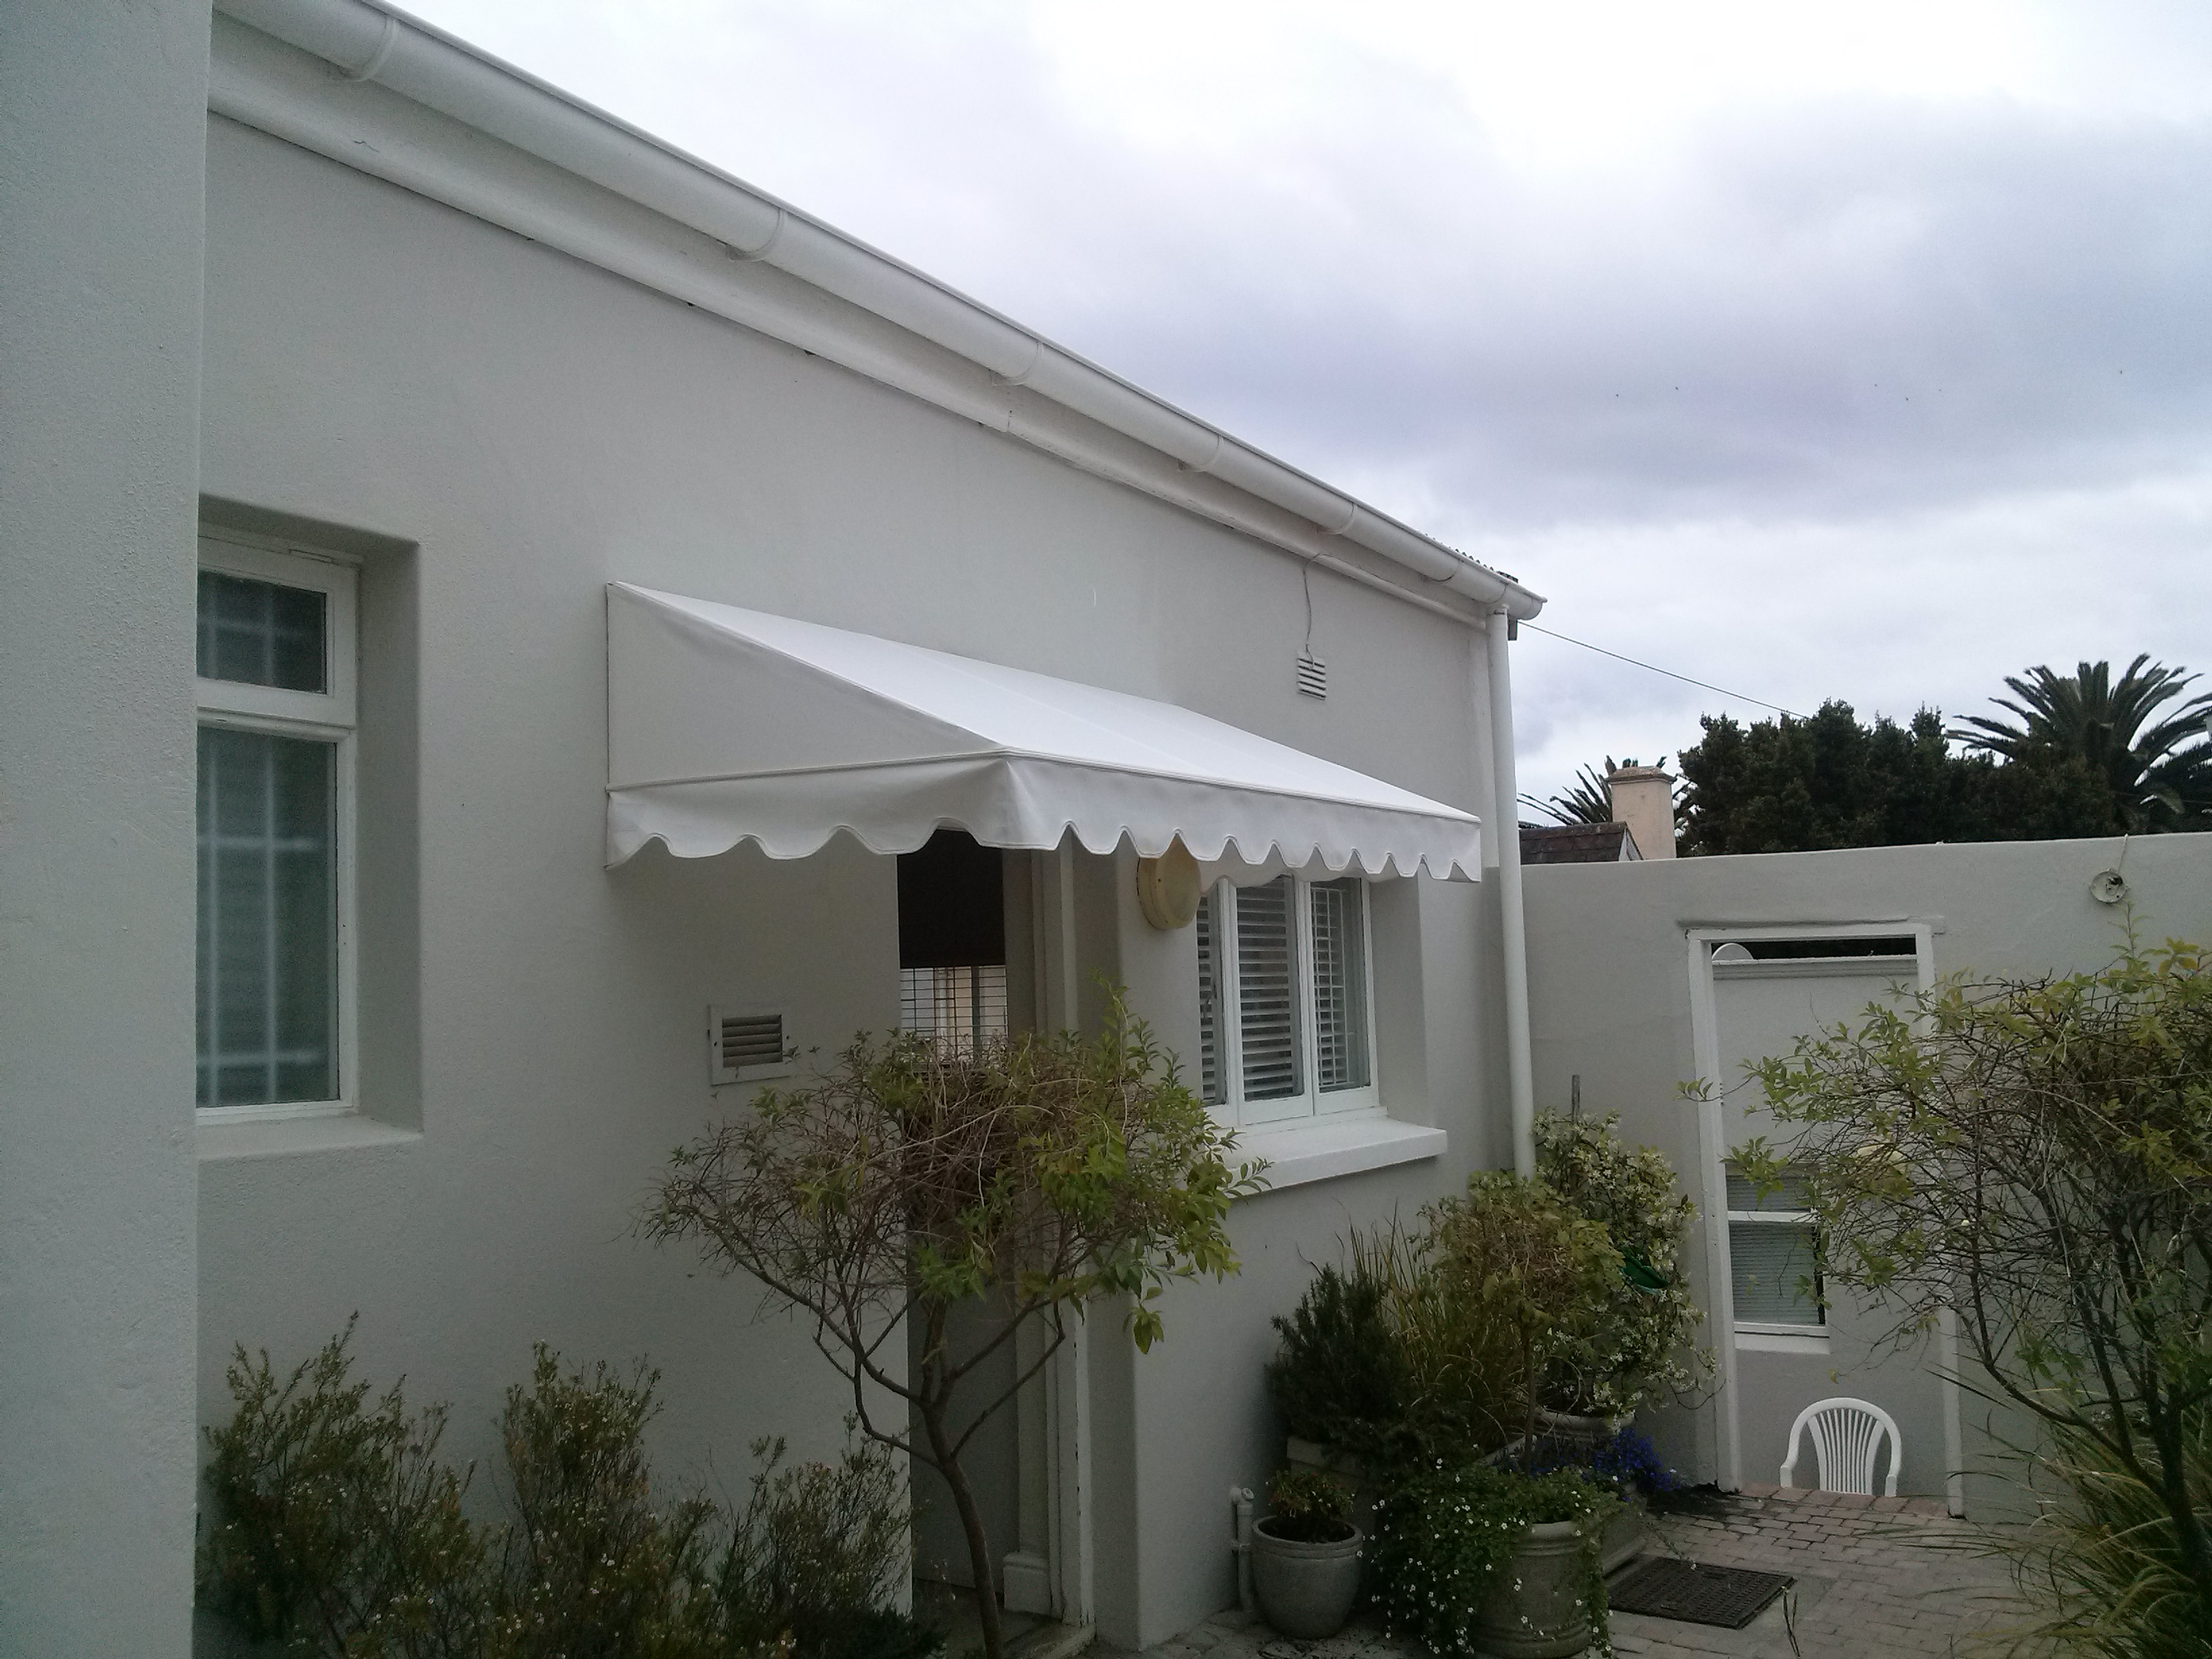 Fixed Canopy Awnings